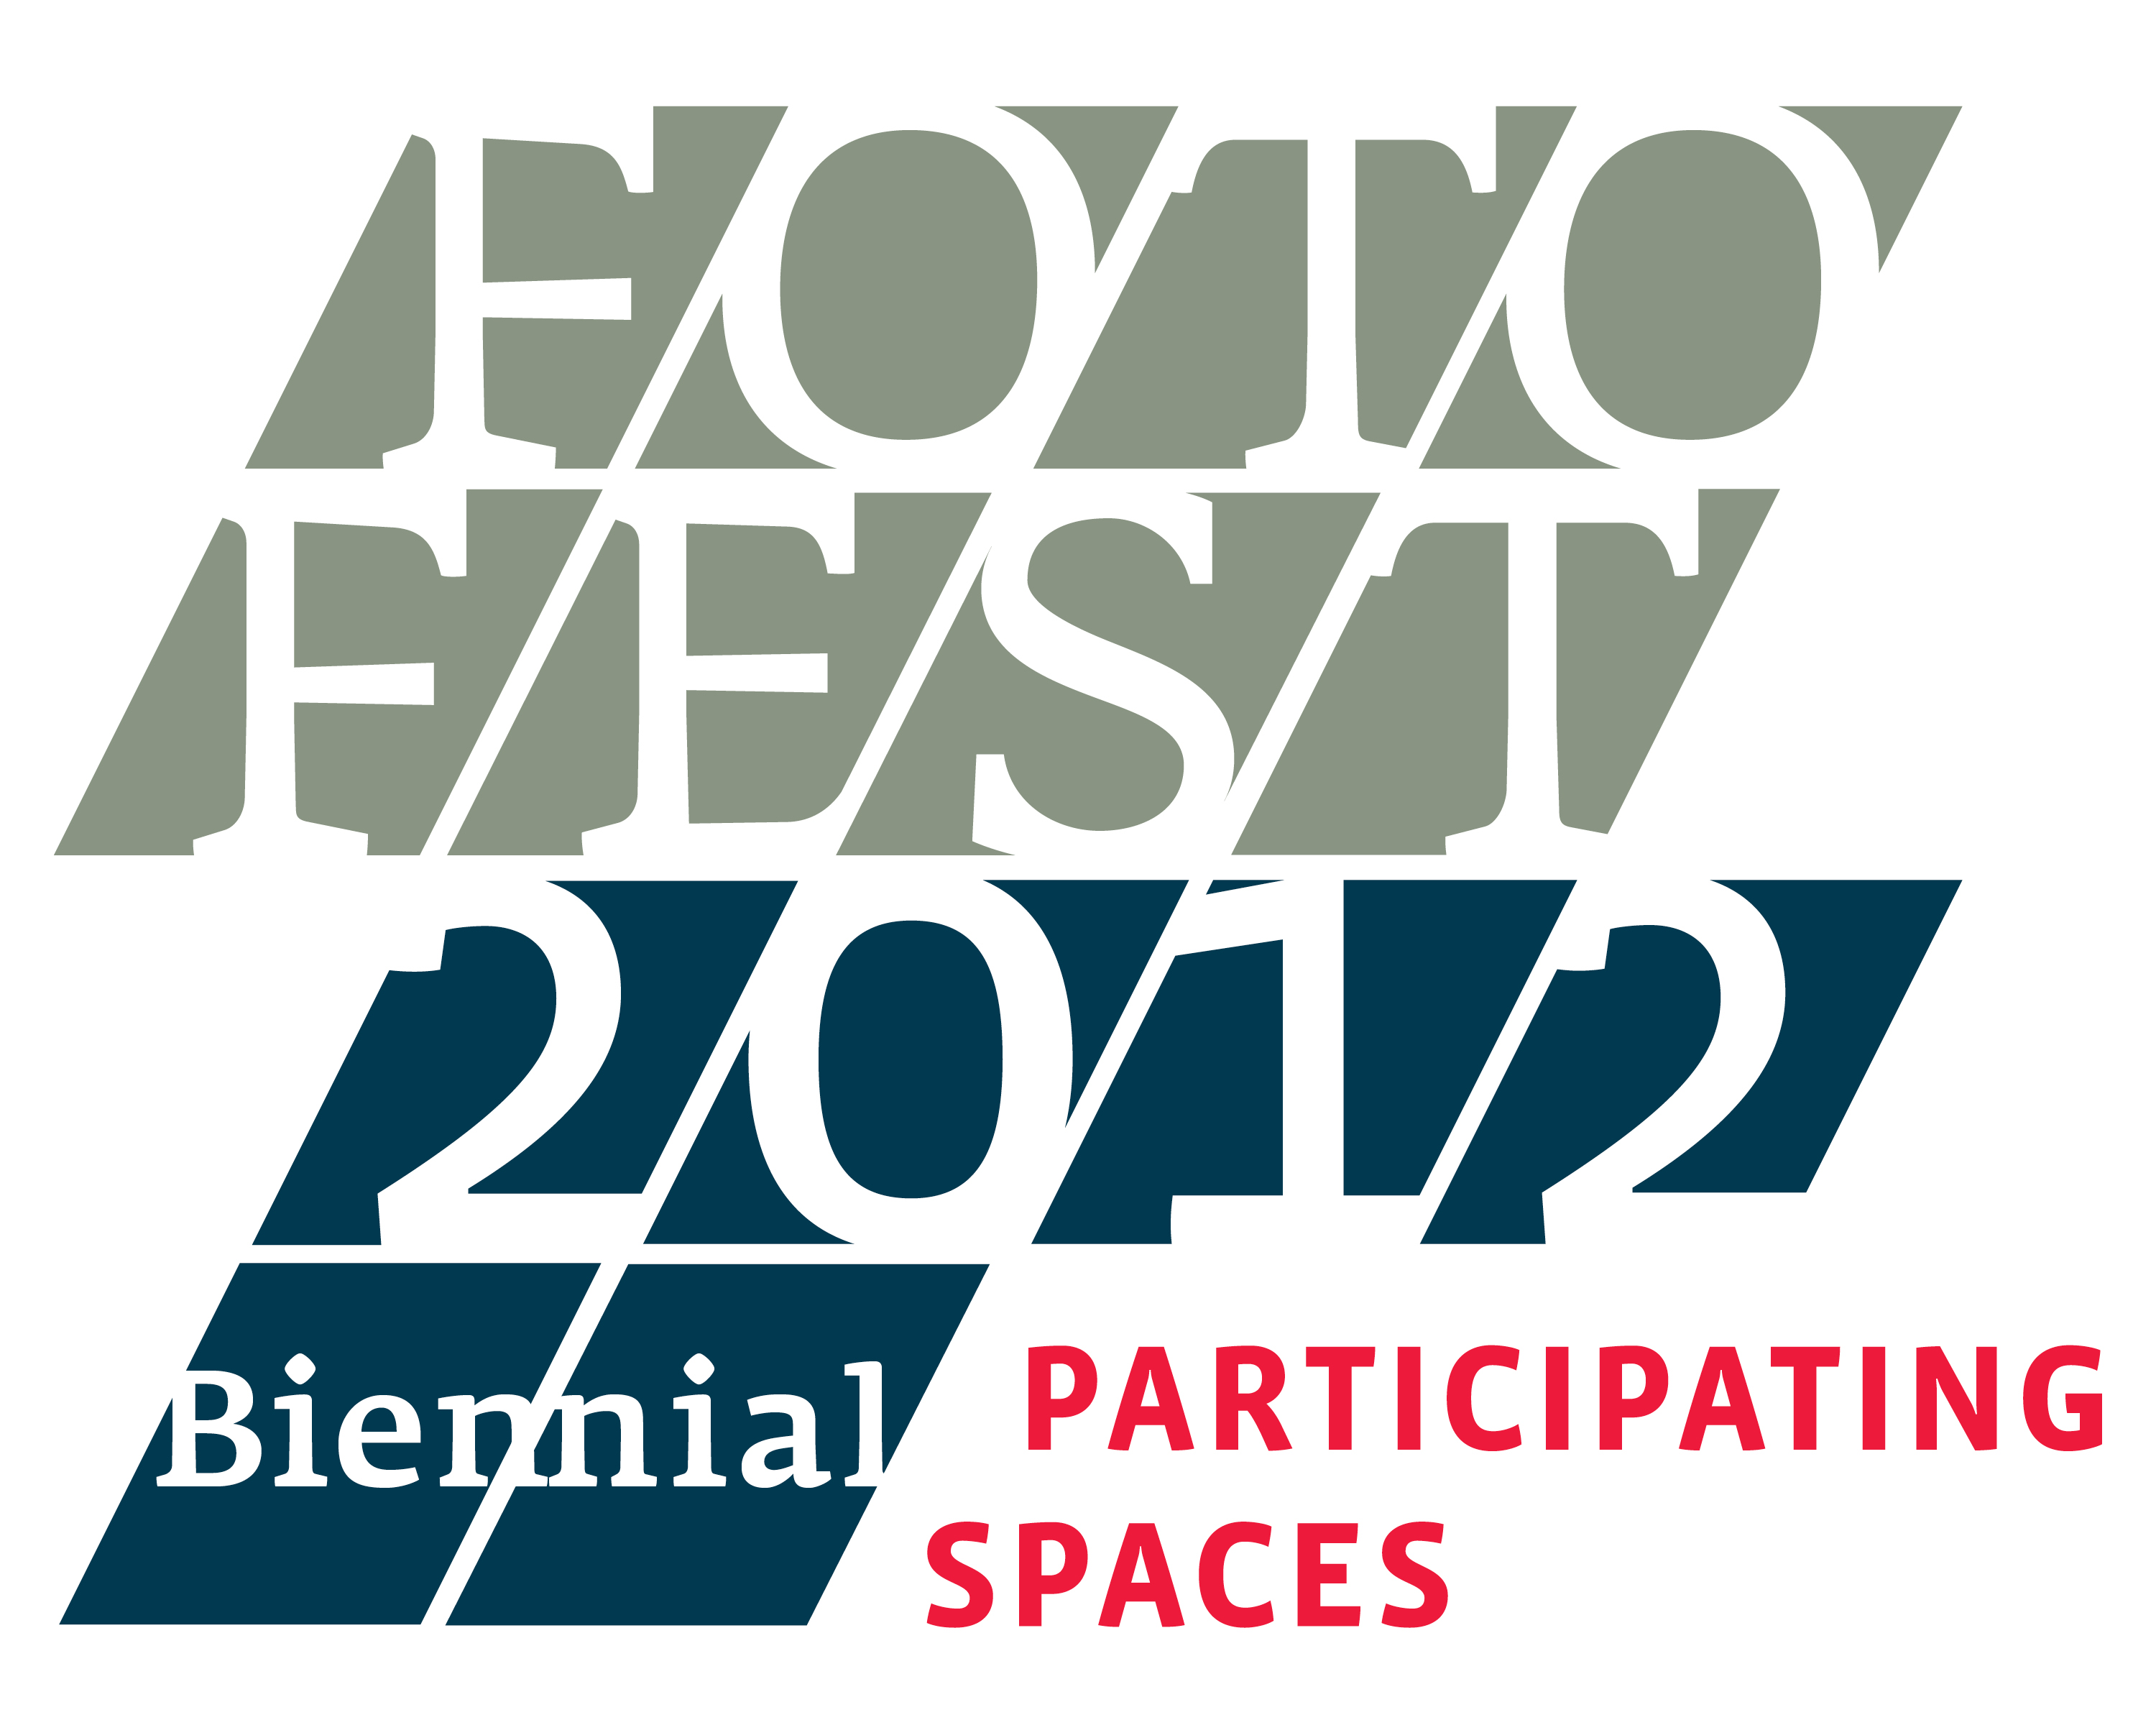 FotoFest Participating Space logo